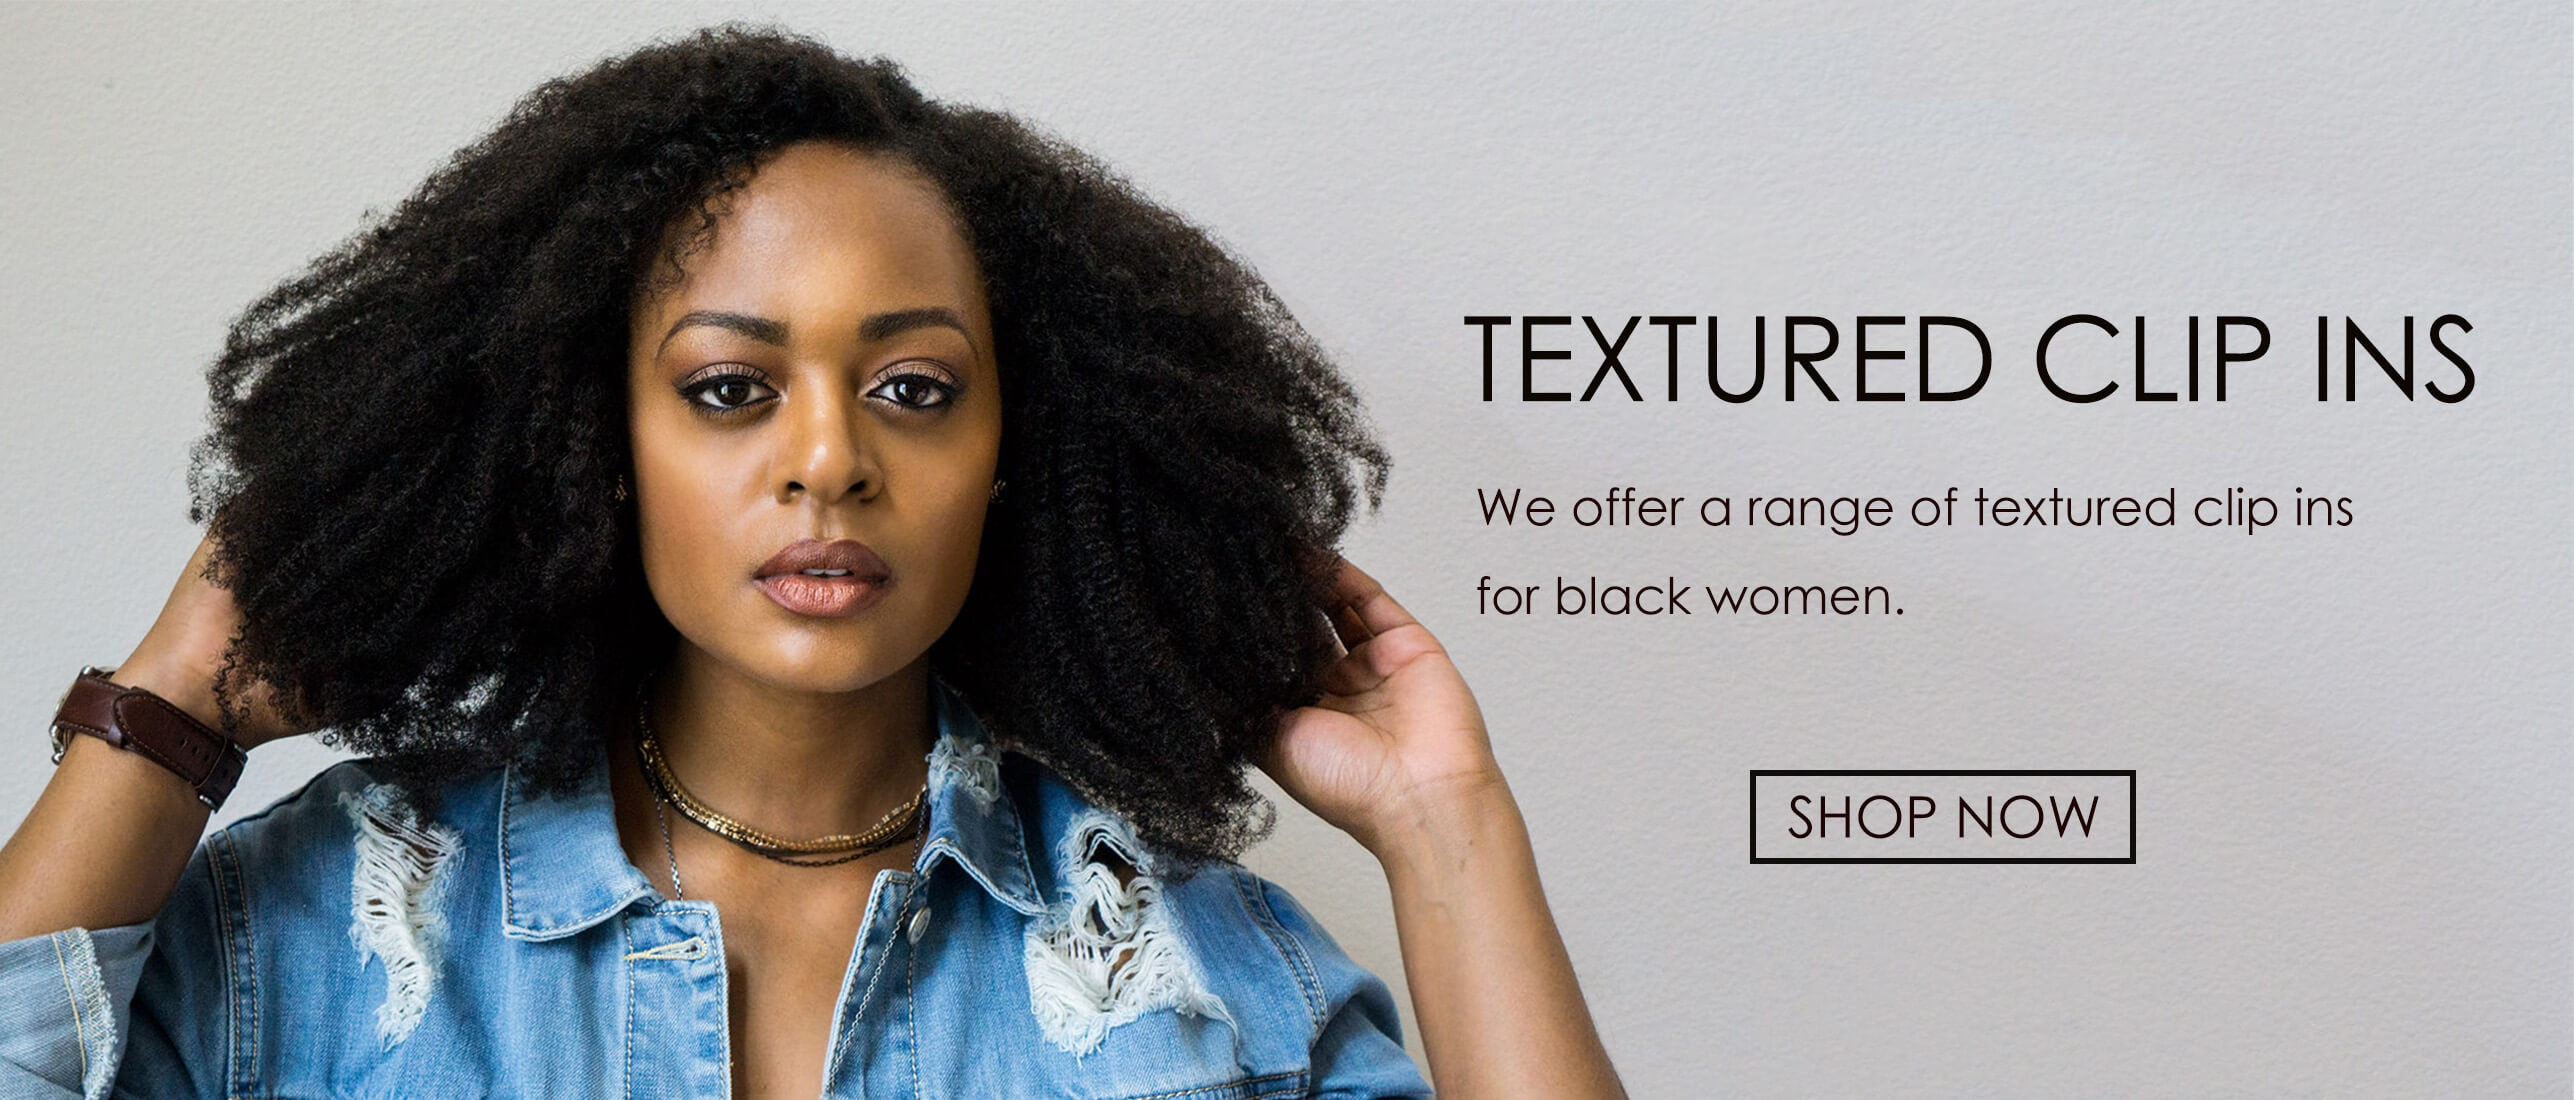 How To Protective Style Using Textured Clip Ins